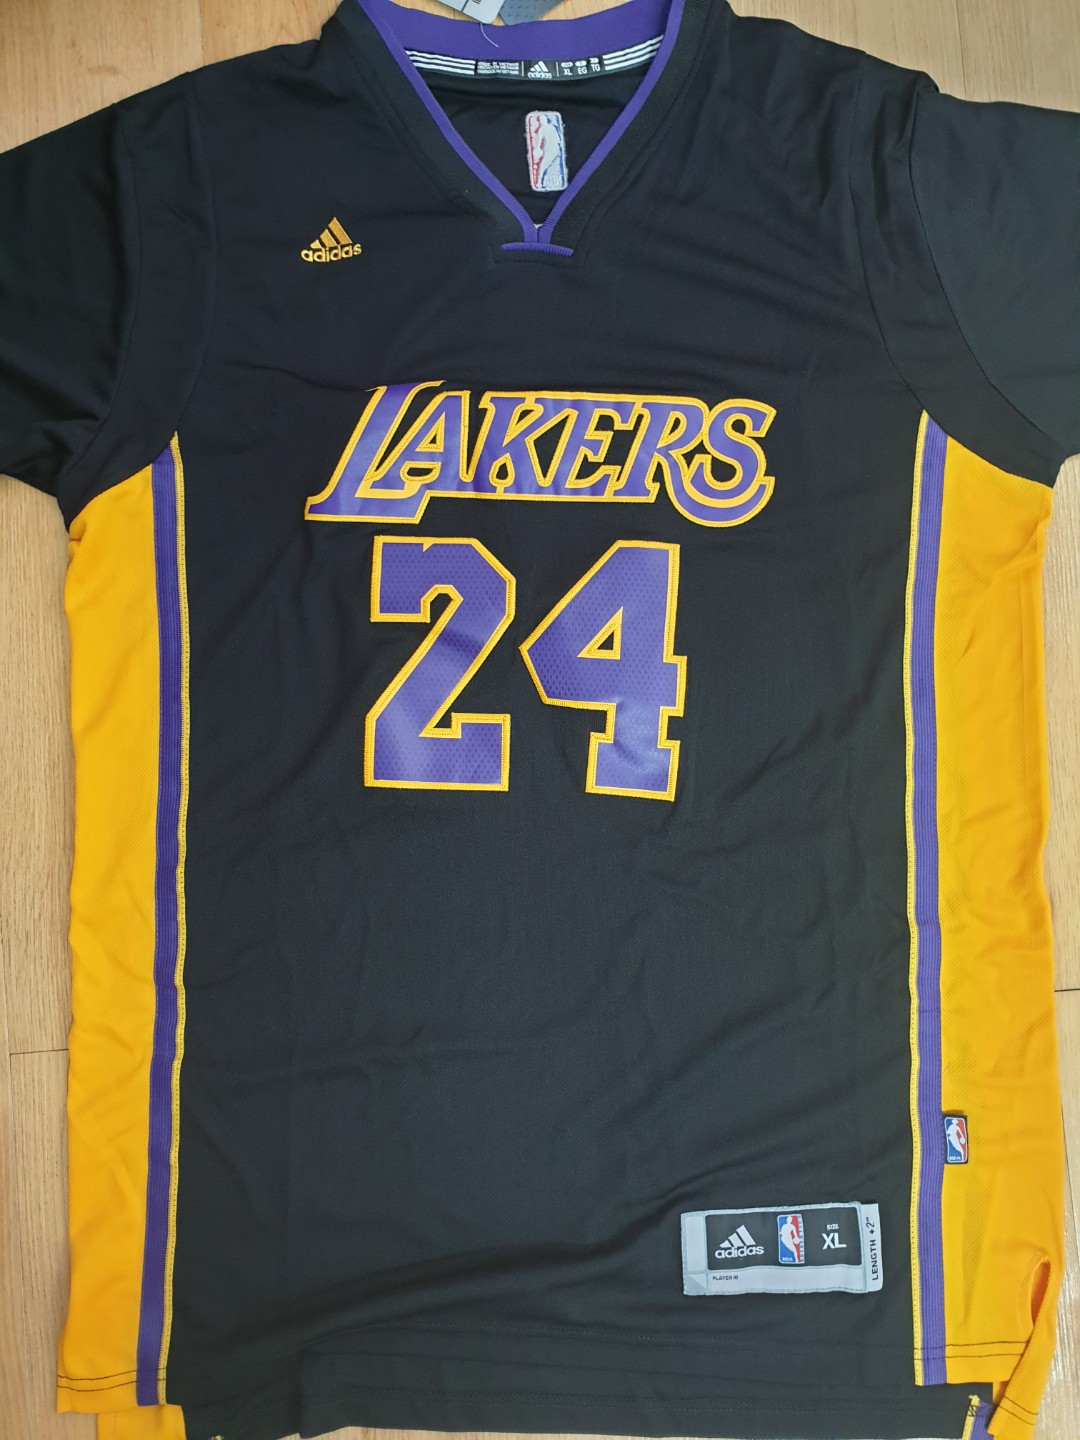 los angeles lakers sleeve jersey Off 50% - www.bashhguidelines.org